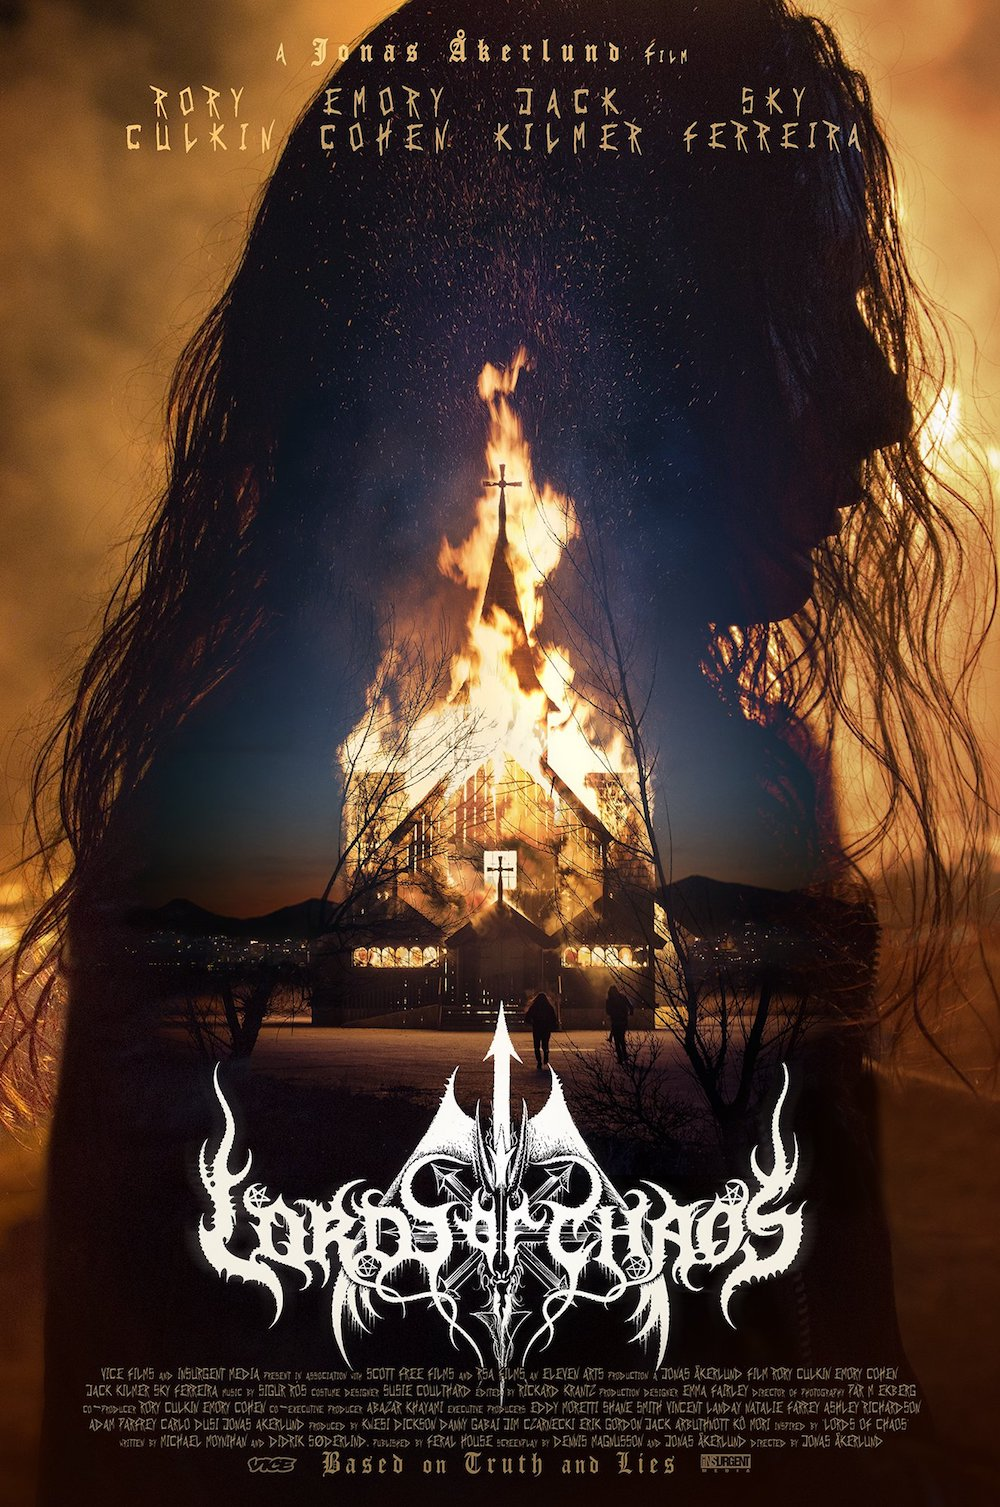 'Lords of Chaos' Poster Looks Like a Black Metal Album ...